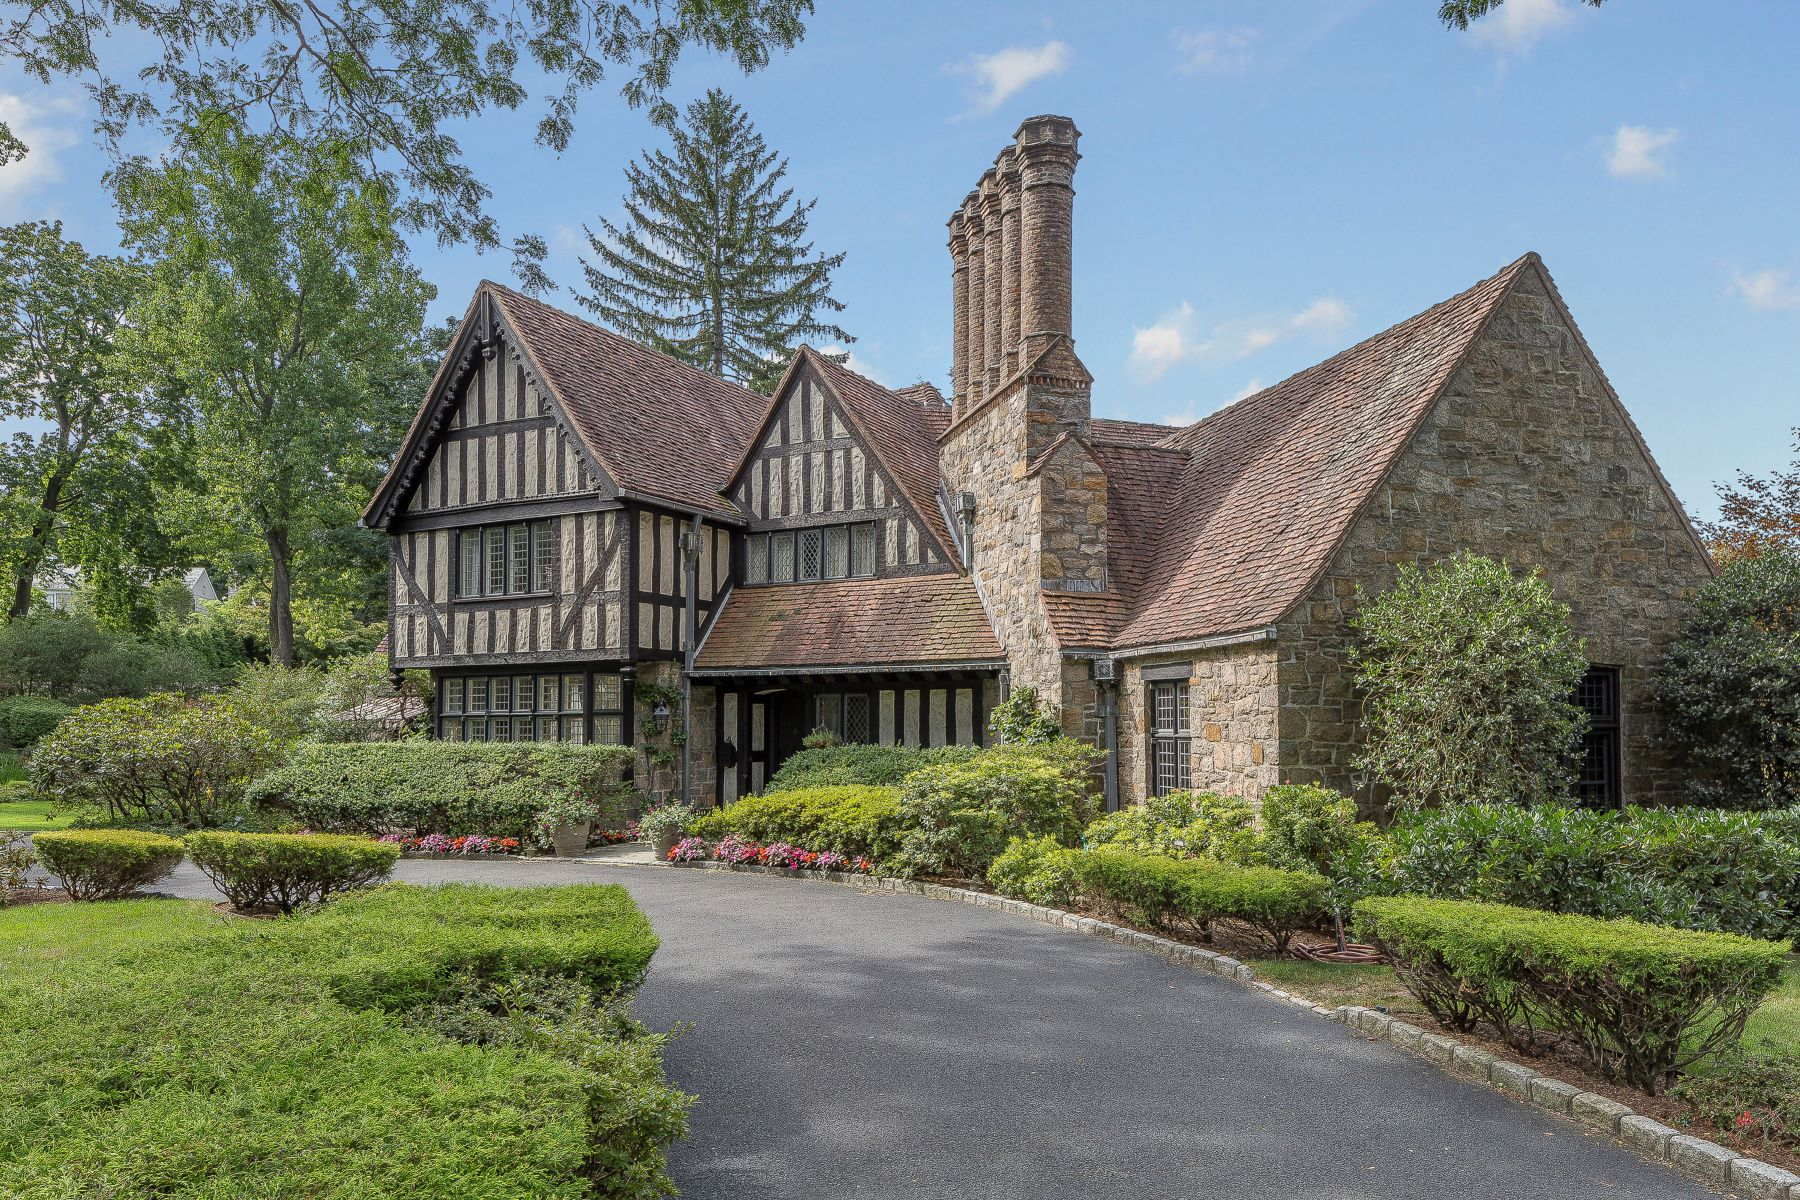 Single Family Home for Sale at Tudor Style 274 Pondfield Road Bronxville, New York 10708 United States